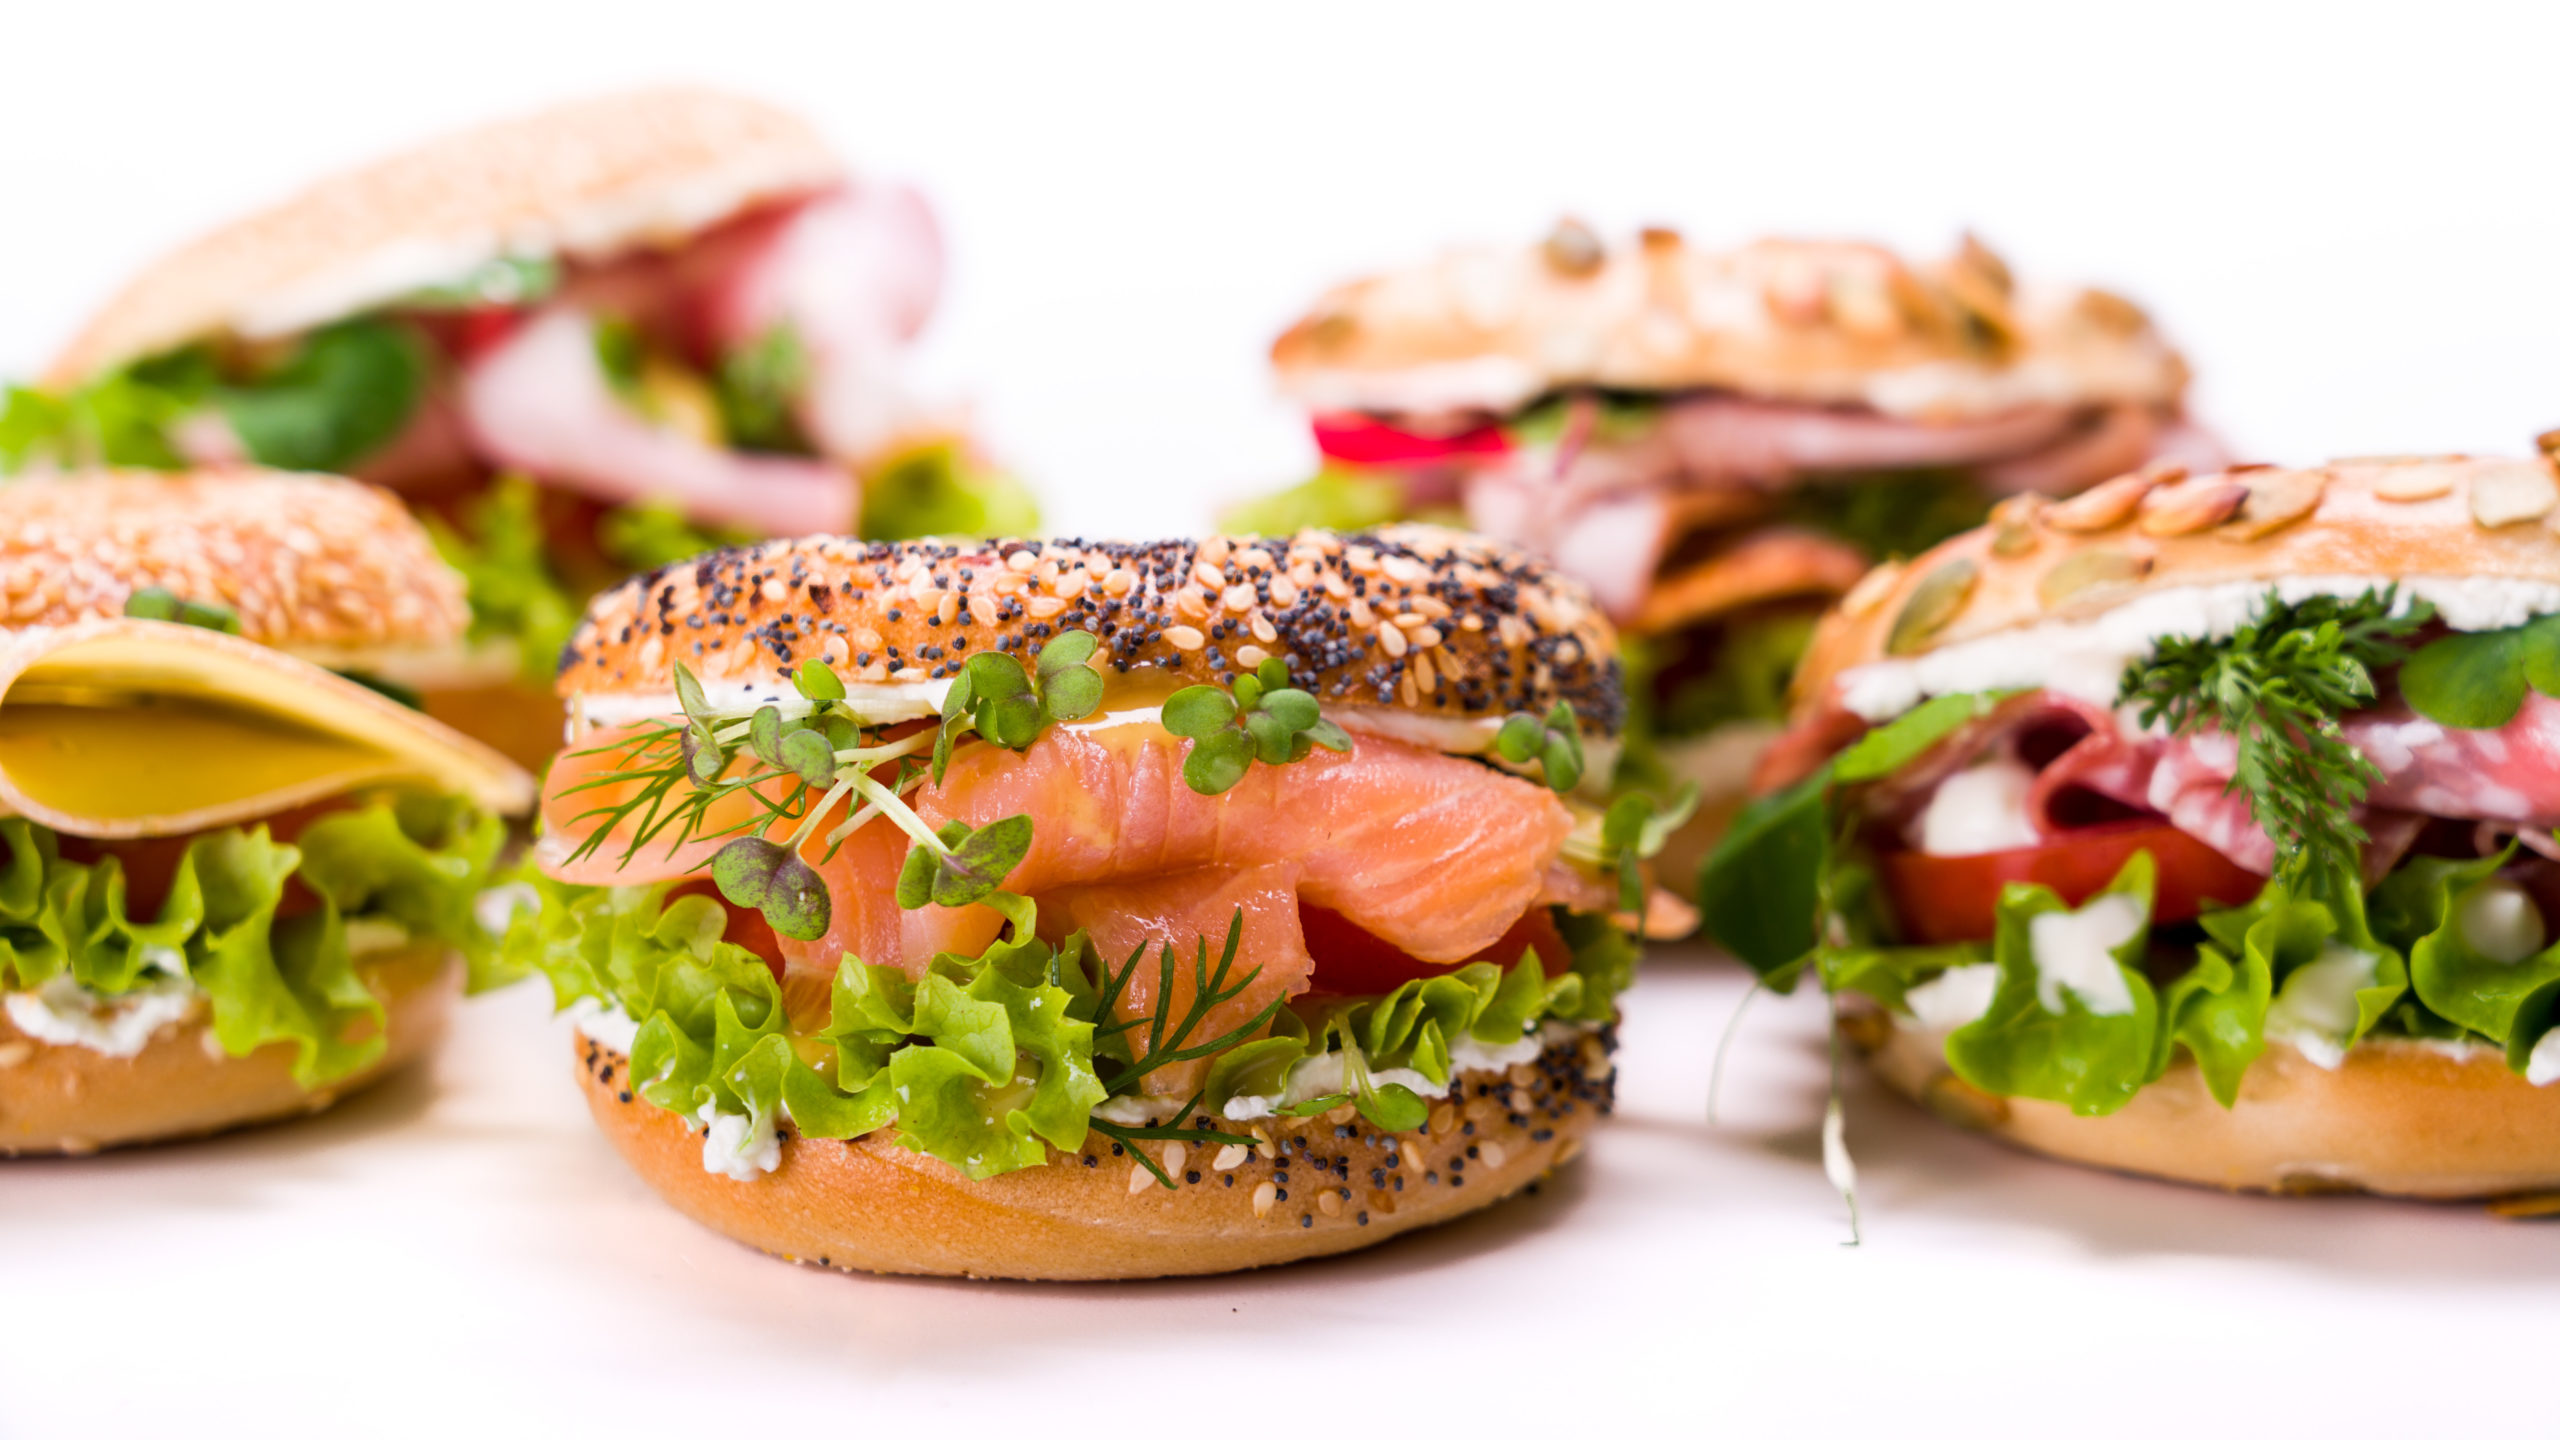 mini-bagel-business-catering-fingerfood